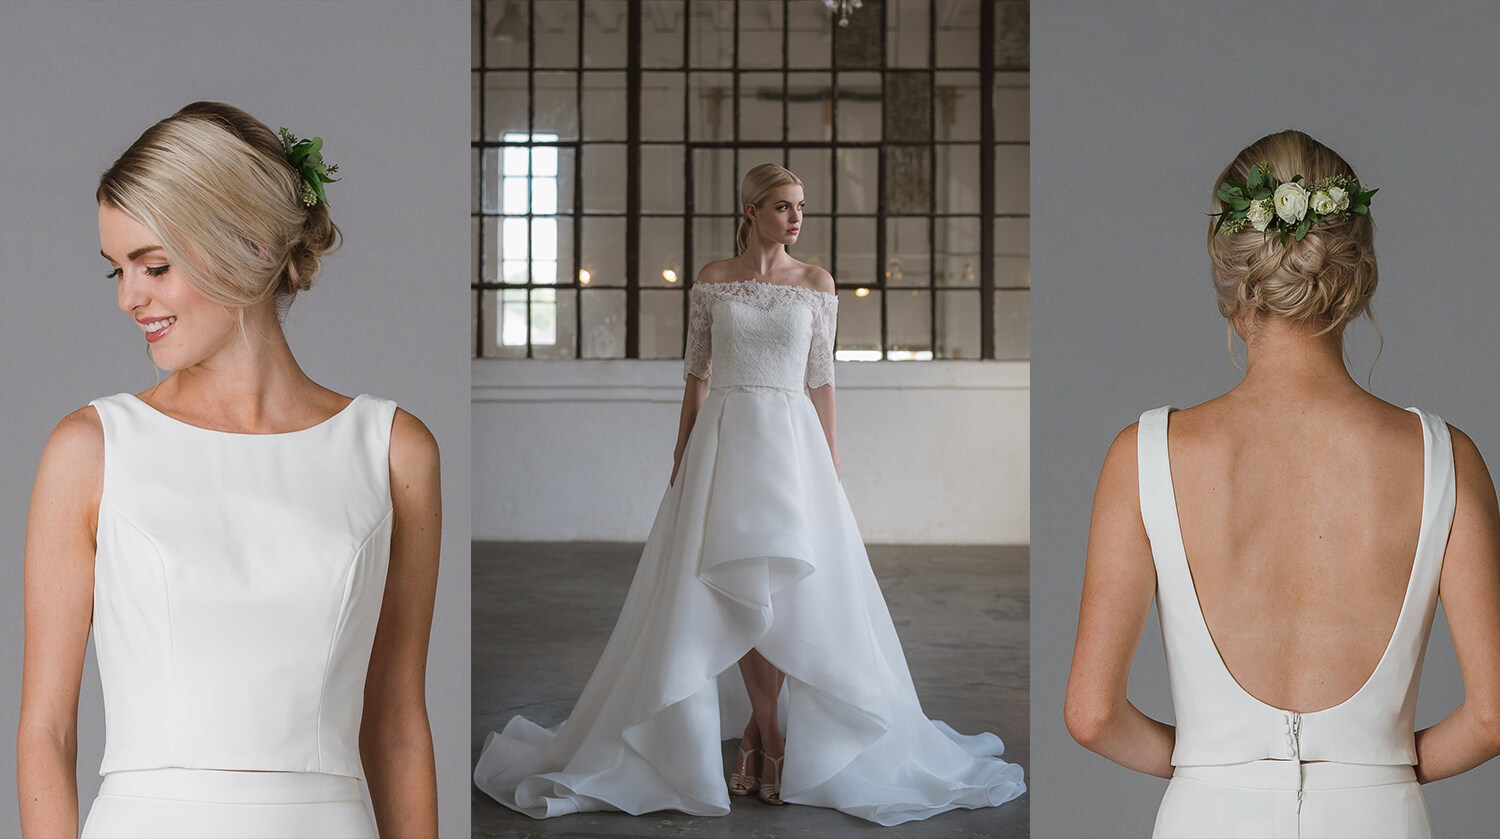 A dramatic wedding dress pairing with high-low hems and necklines